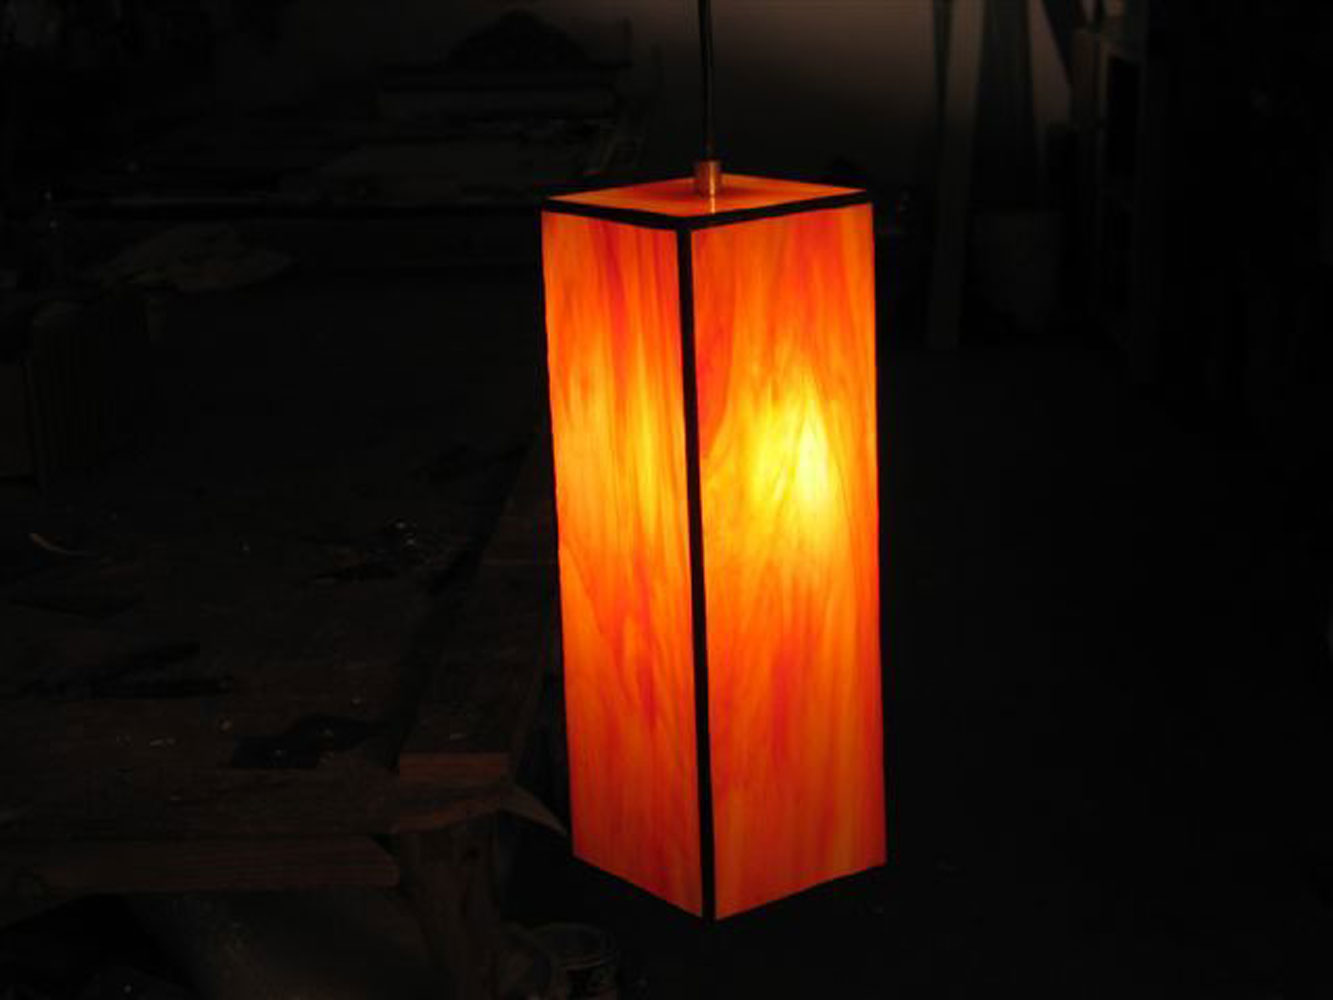 light fixtures- Formed cube, 30 cm high, 10 cm side